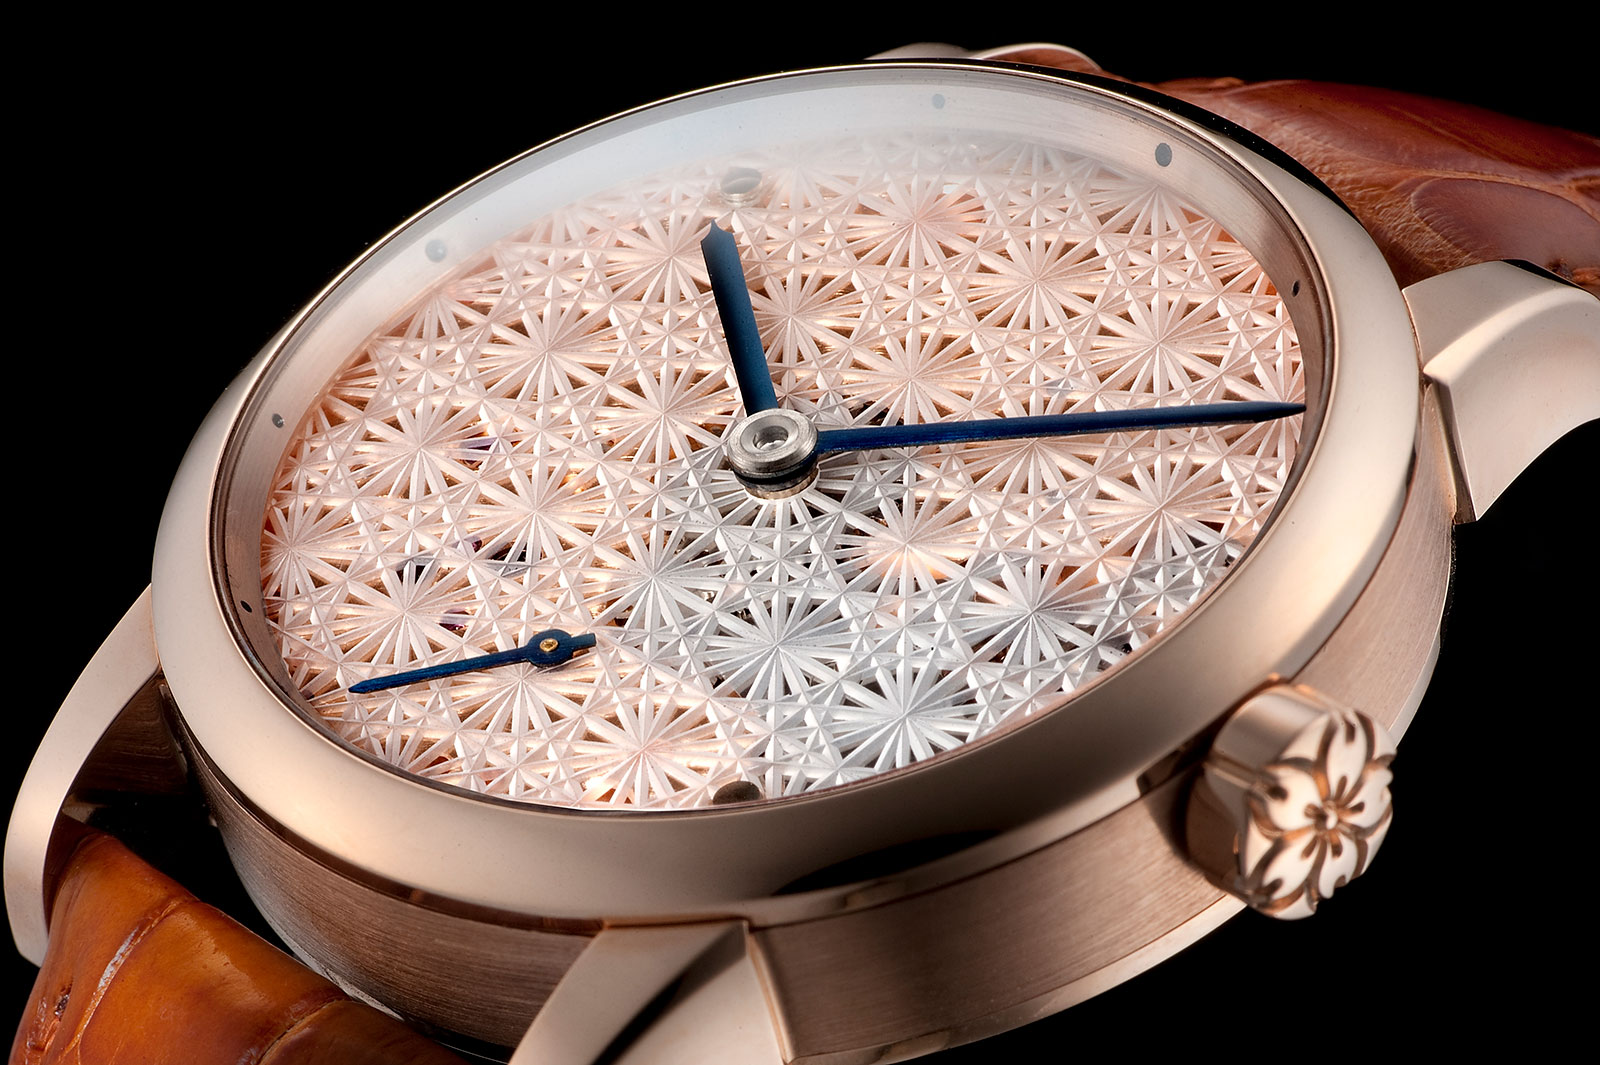 Daizoh Makihara sakura glass watch 7